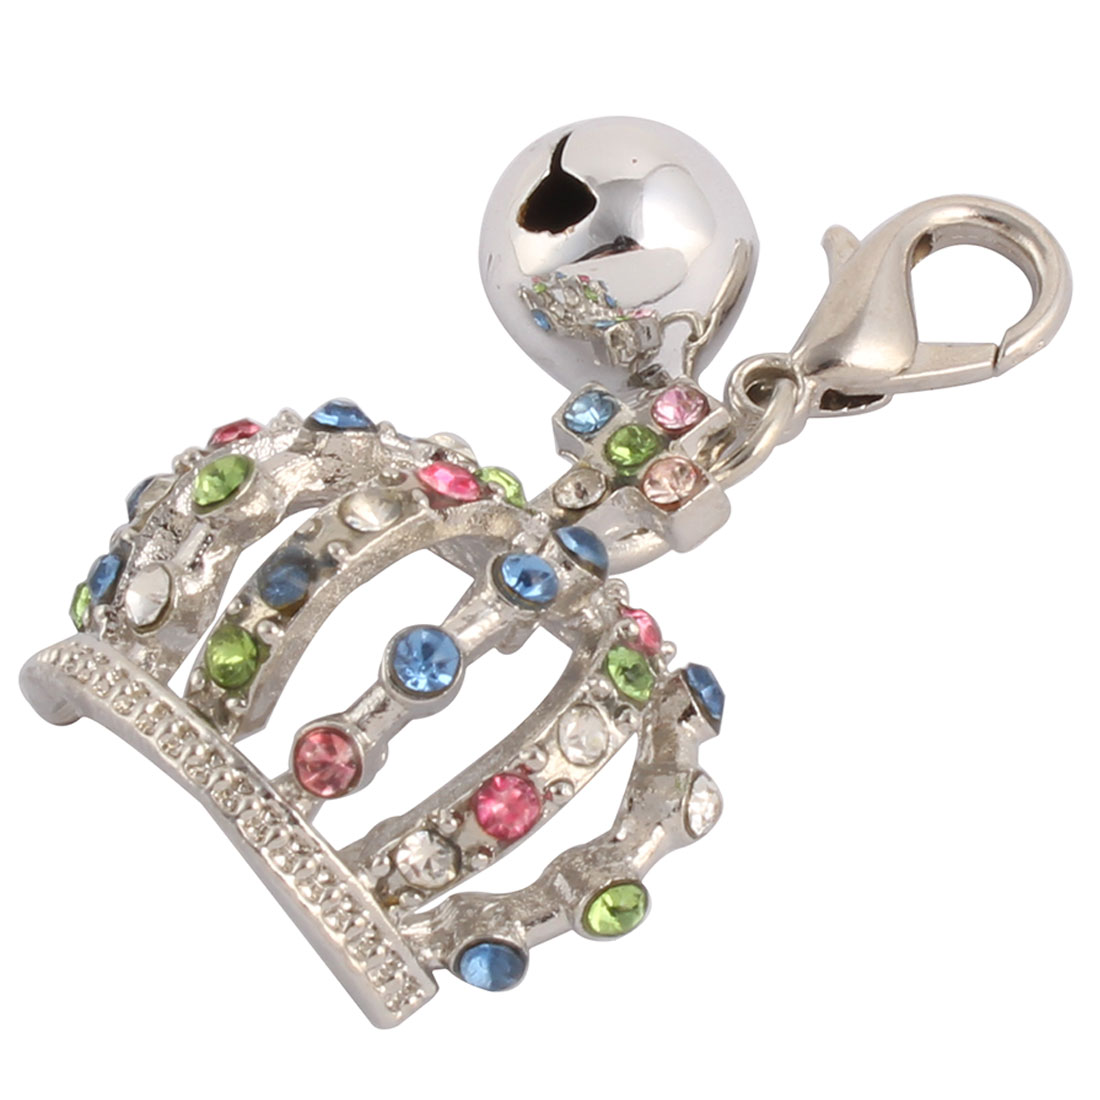 Pet Rhinestone Mosaic Dog Ornament Bell Decor Clasp Crown Charm Pendent Silver Tone